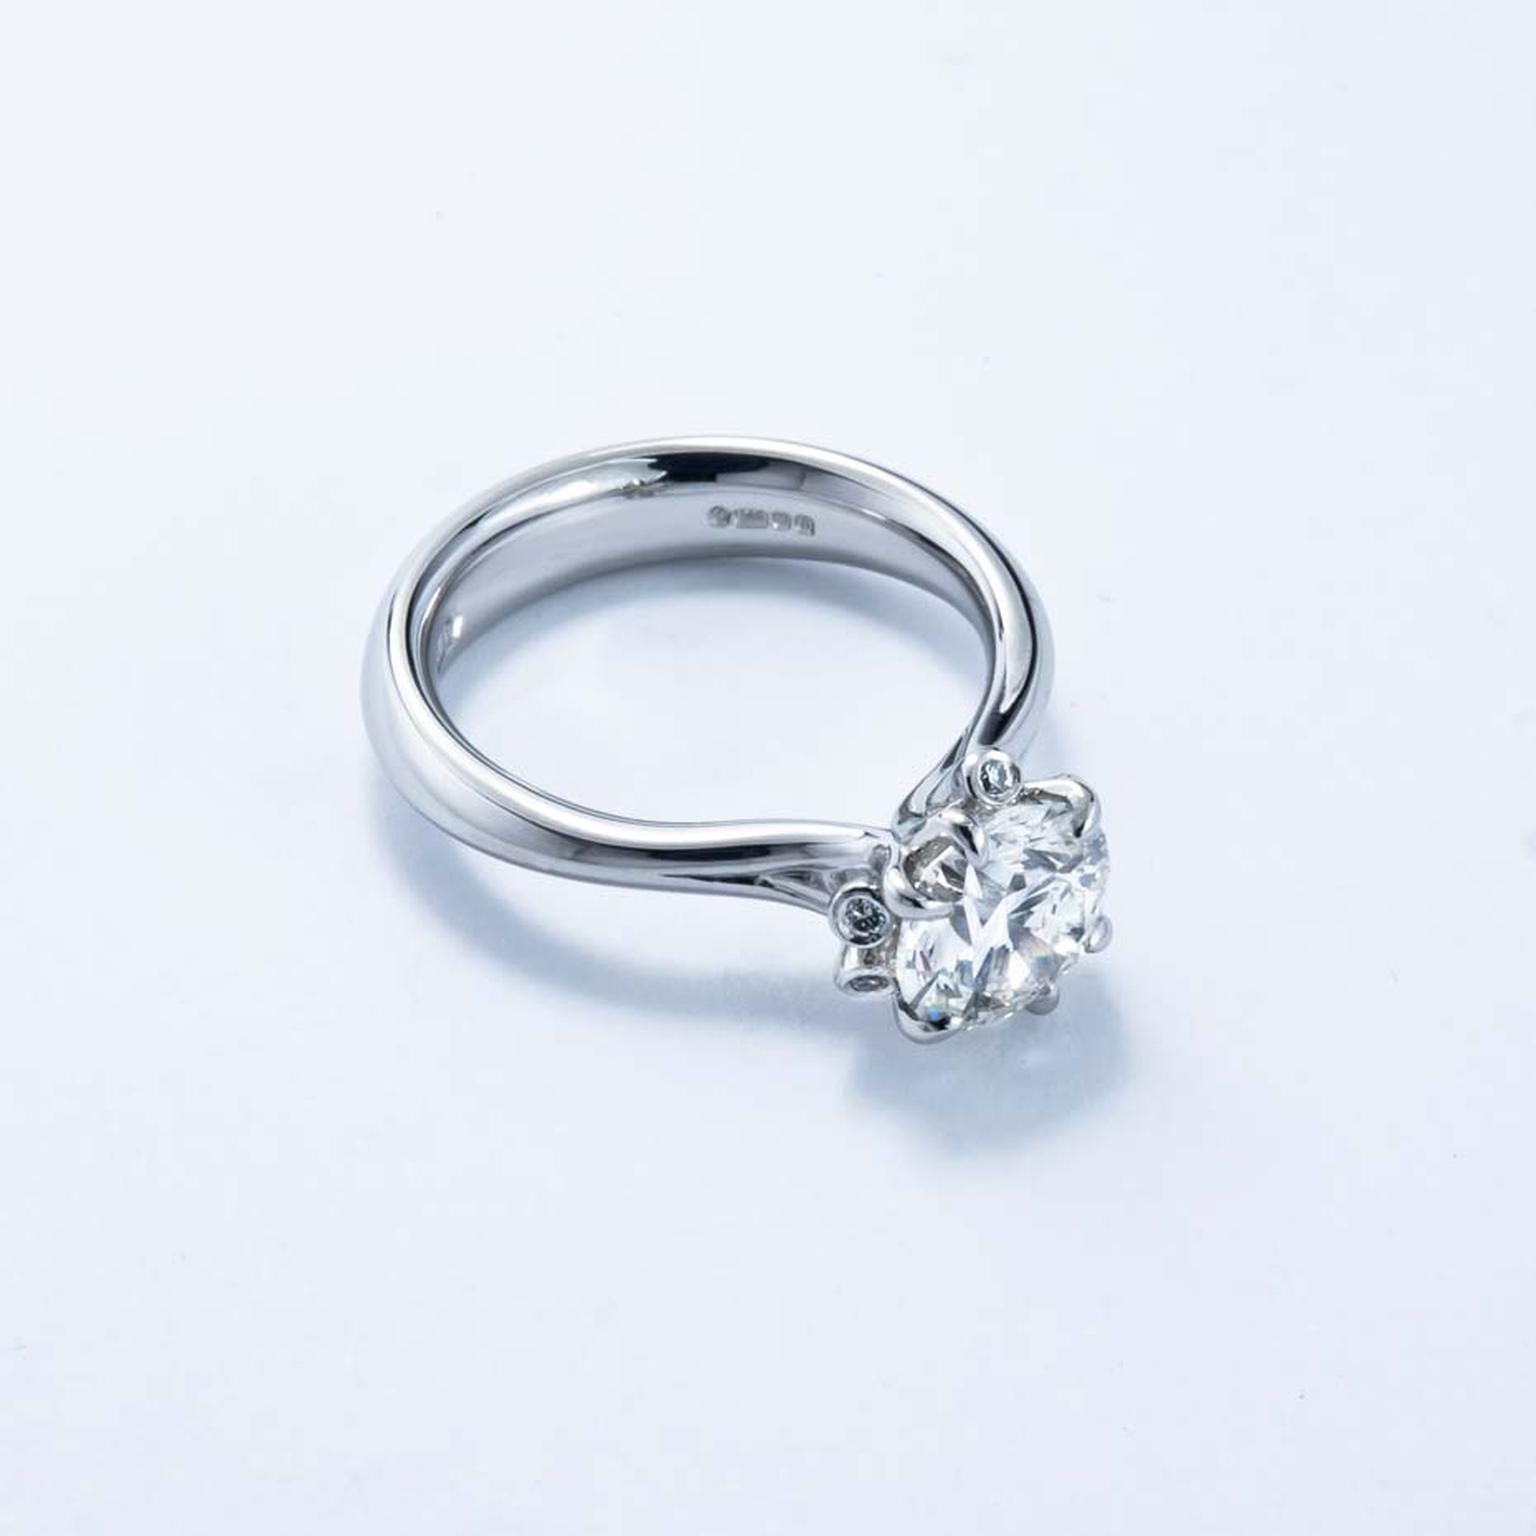 Jon Dibben Fairtrade Meadow diamond engagement ring in platinum, set with recycled and Australian diamonds (from £10,000).